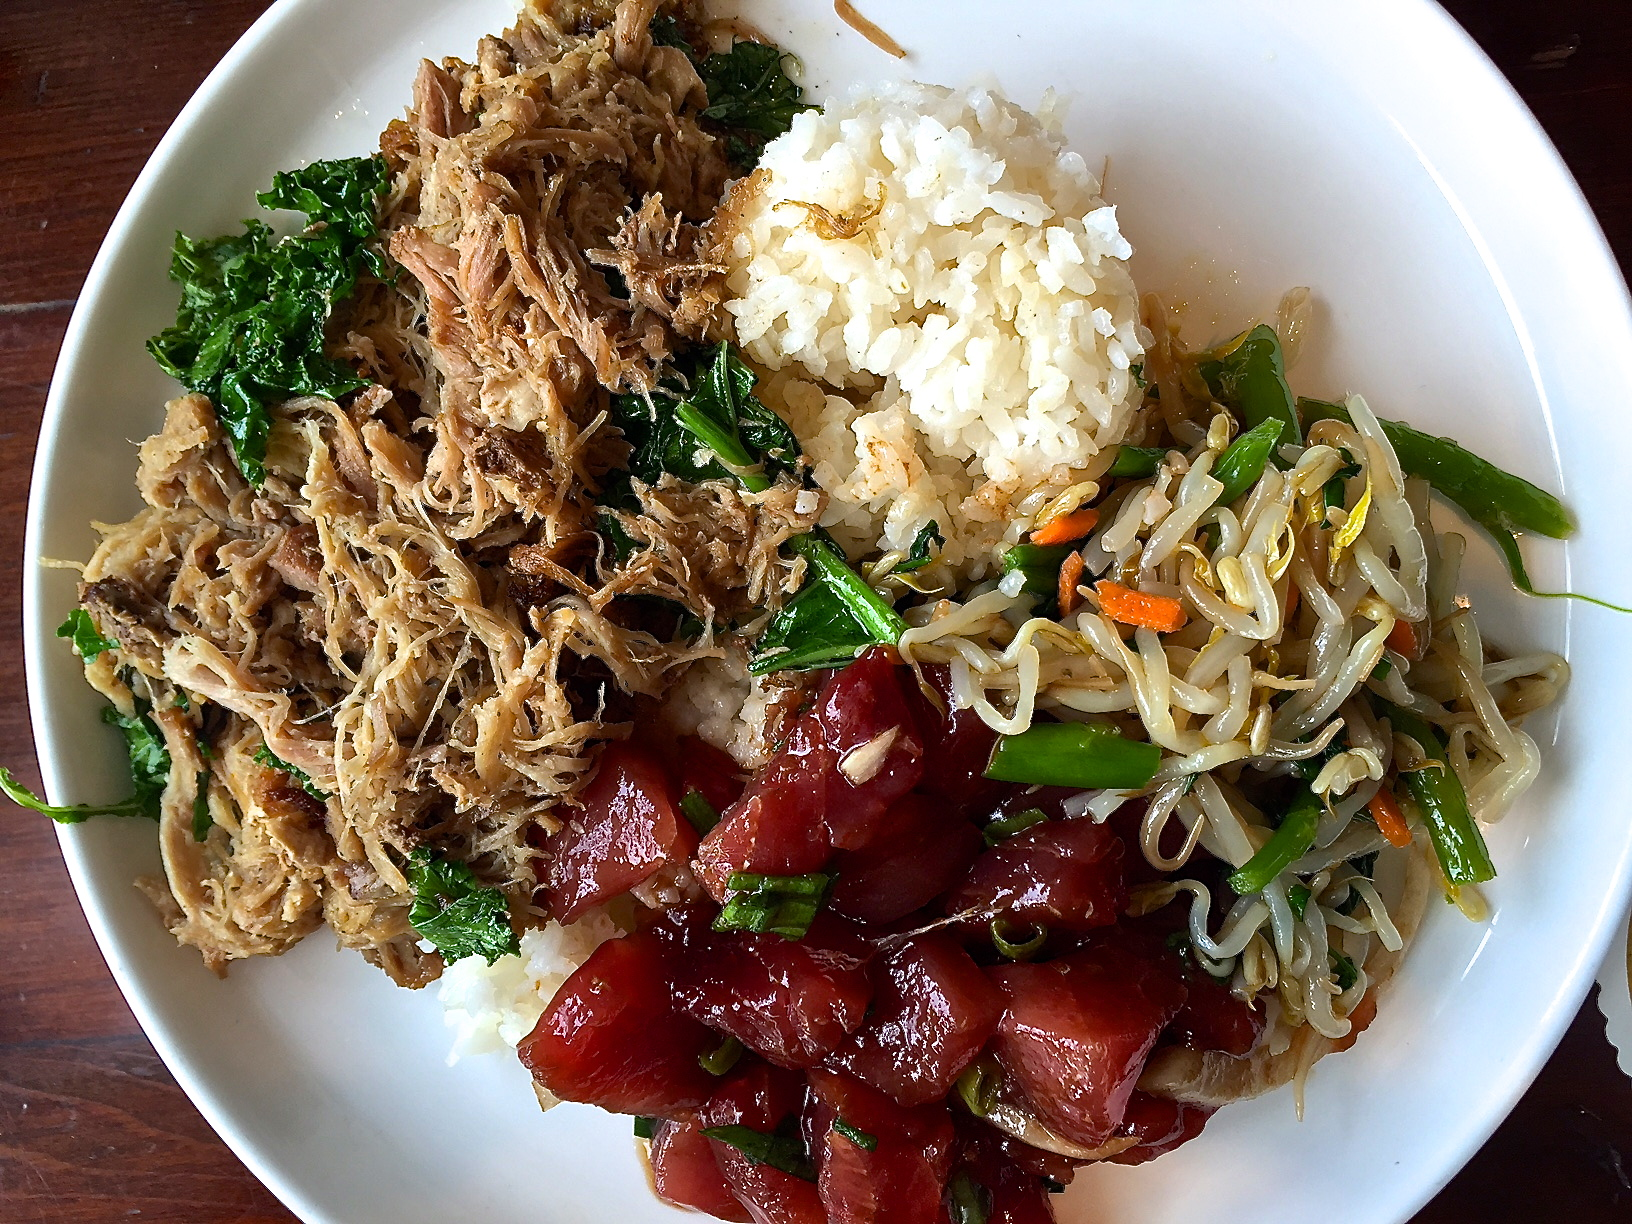 Kalua pig with poke tuna, stir fried vegetables.